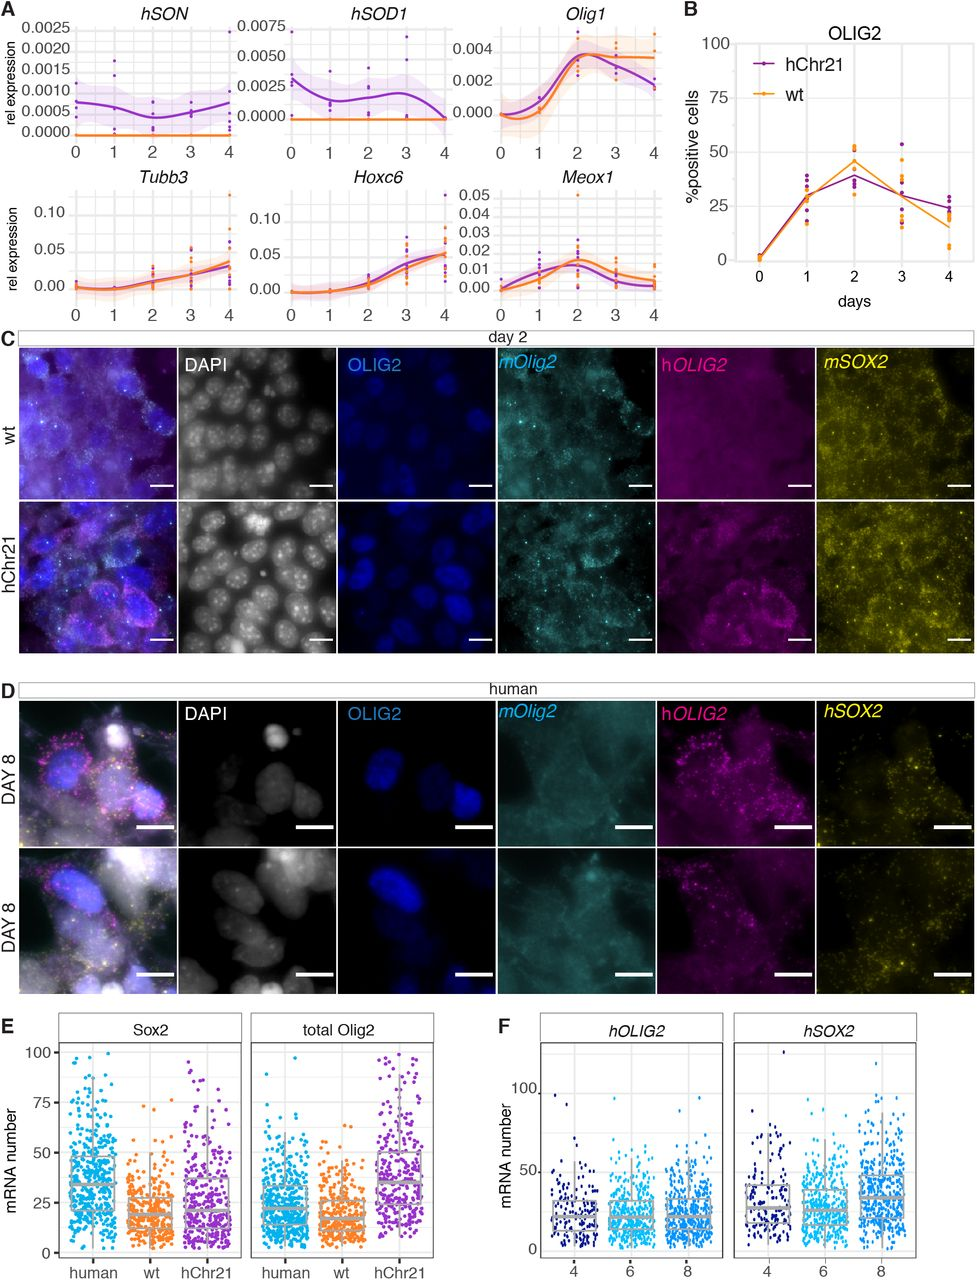 Characterization of mouse in vitro differentiations in the mouse ES cell line carrying hChr21. (A) Expression of Sod1 and Son human genes located on Chromosome 21, the neural markers Tubb3 and Olig 1 and the mesoderm marker Meoxl in wt and hChr21 differentiations. (B) Percentage of OLIG2 positive cells from days 0 to 4 in wt and hChr21 differentiation show no major changes in cell proportions over time. (C) Representative images of smFISH used for segmentation and quantification of wt and hChr21 mouse cells. (D) Representative images of smFISH used for segmentation and quantification of human MN differentiation. (E) <t>Sox2</t> and total Olig2 mRNA number in human, wt and hChr21 neural progenitors. (F) hSOX2 and hOLIG2 mRNA number in human neural progenitors at days 4, 5 and 6. Scale bars 50μM.